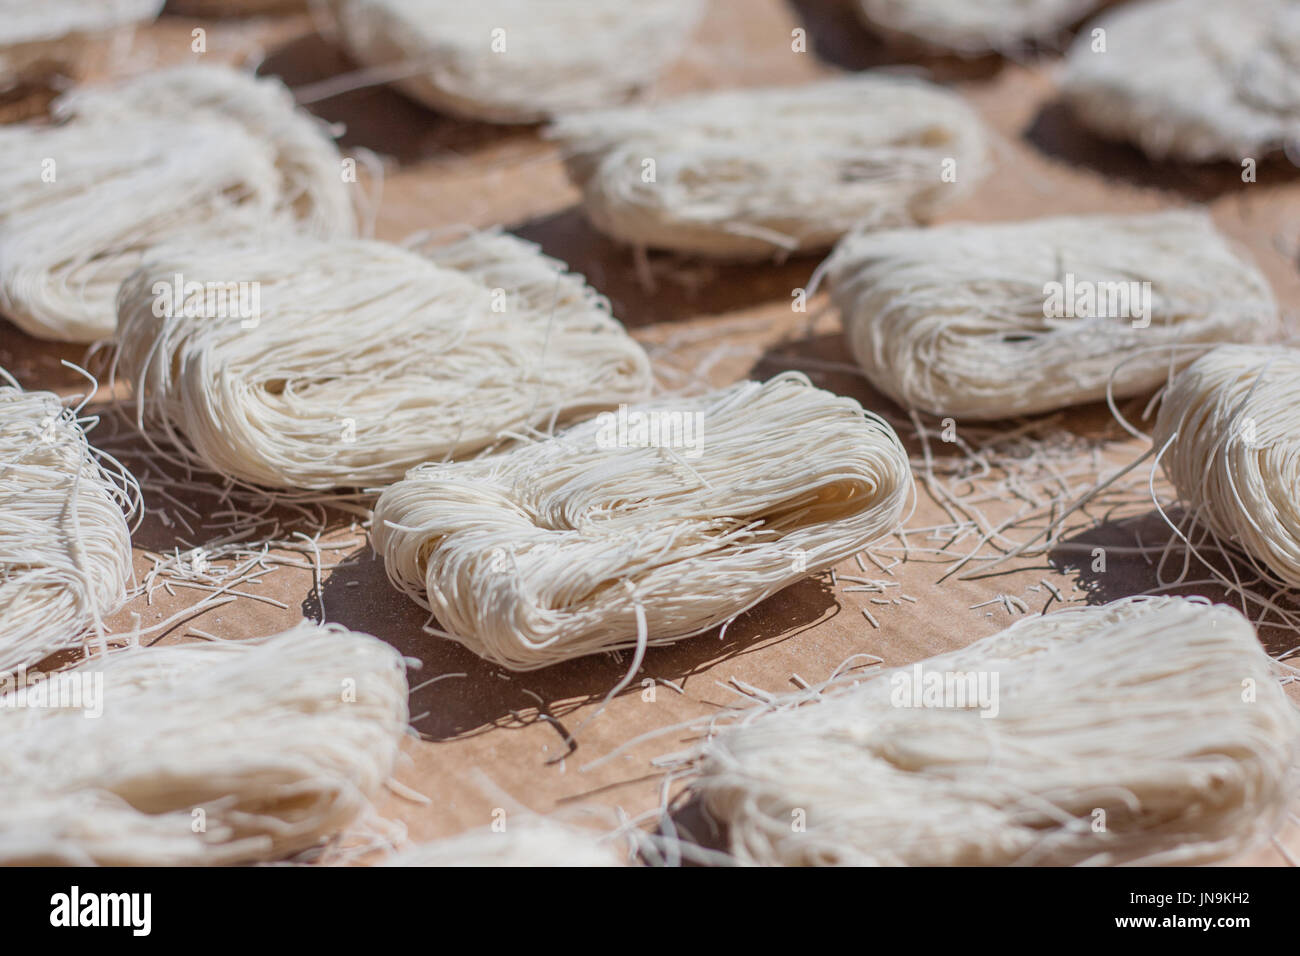 closeup of dry noodles drying in the sun - Stock Image